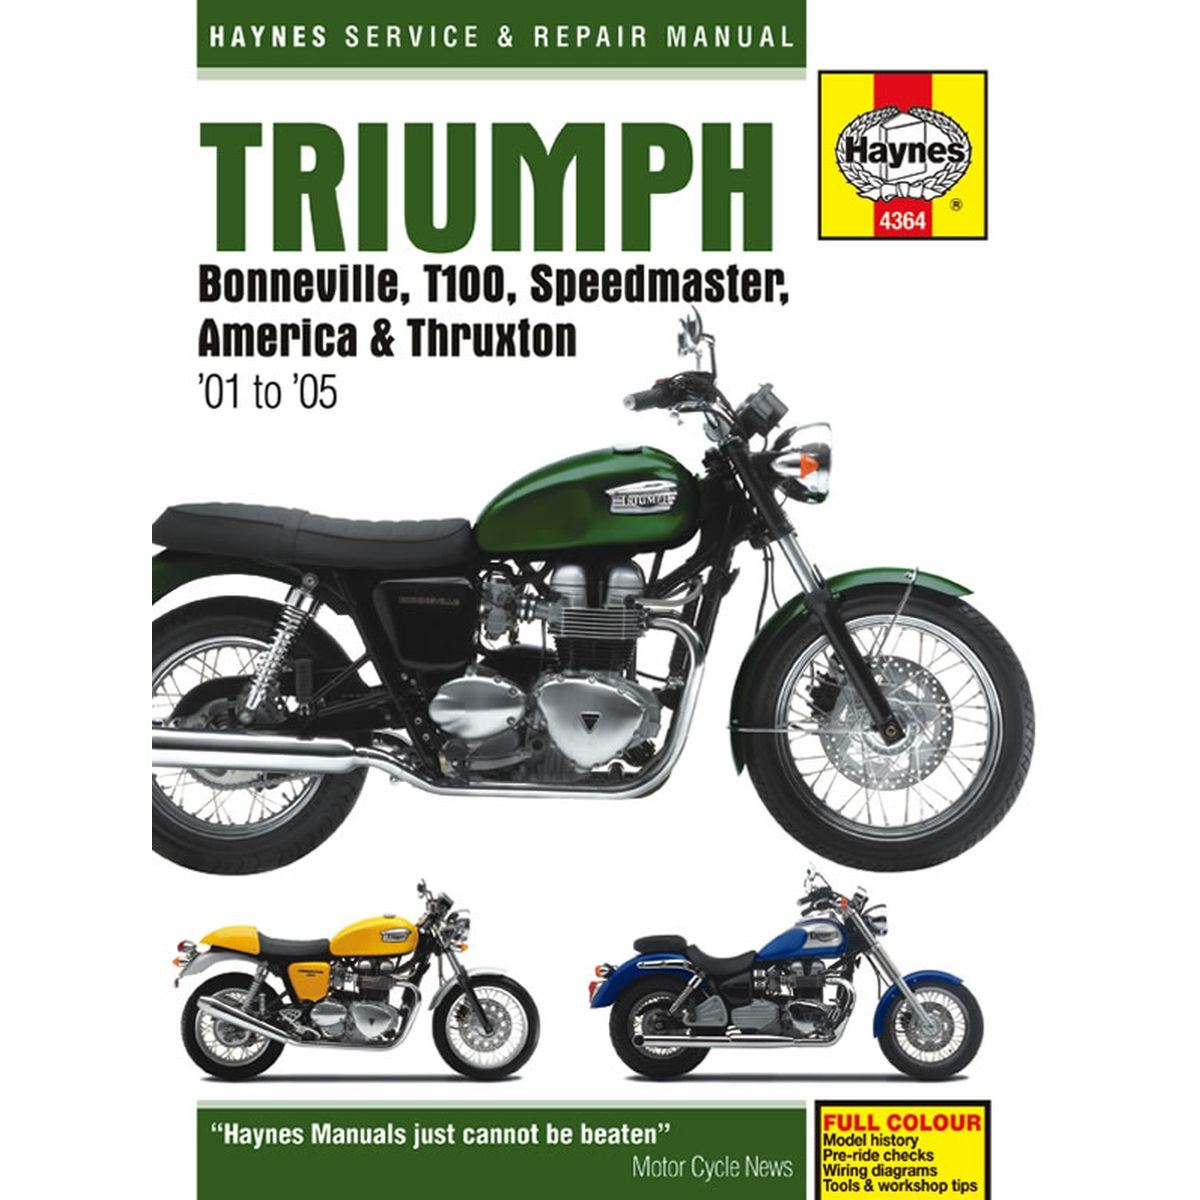 Triumph Bonneville Efi Wiring Diagram - Trusted Schematic Diagrams •